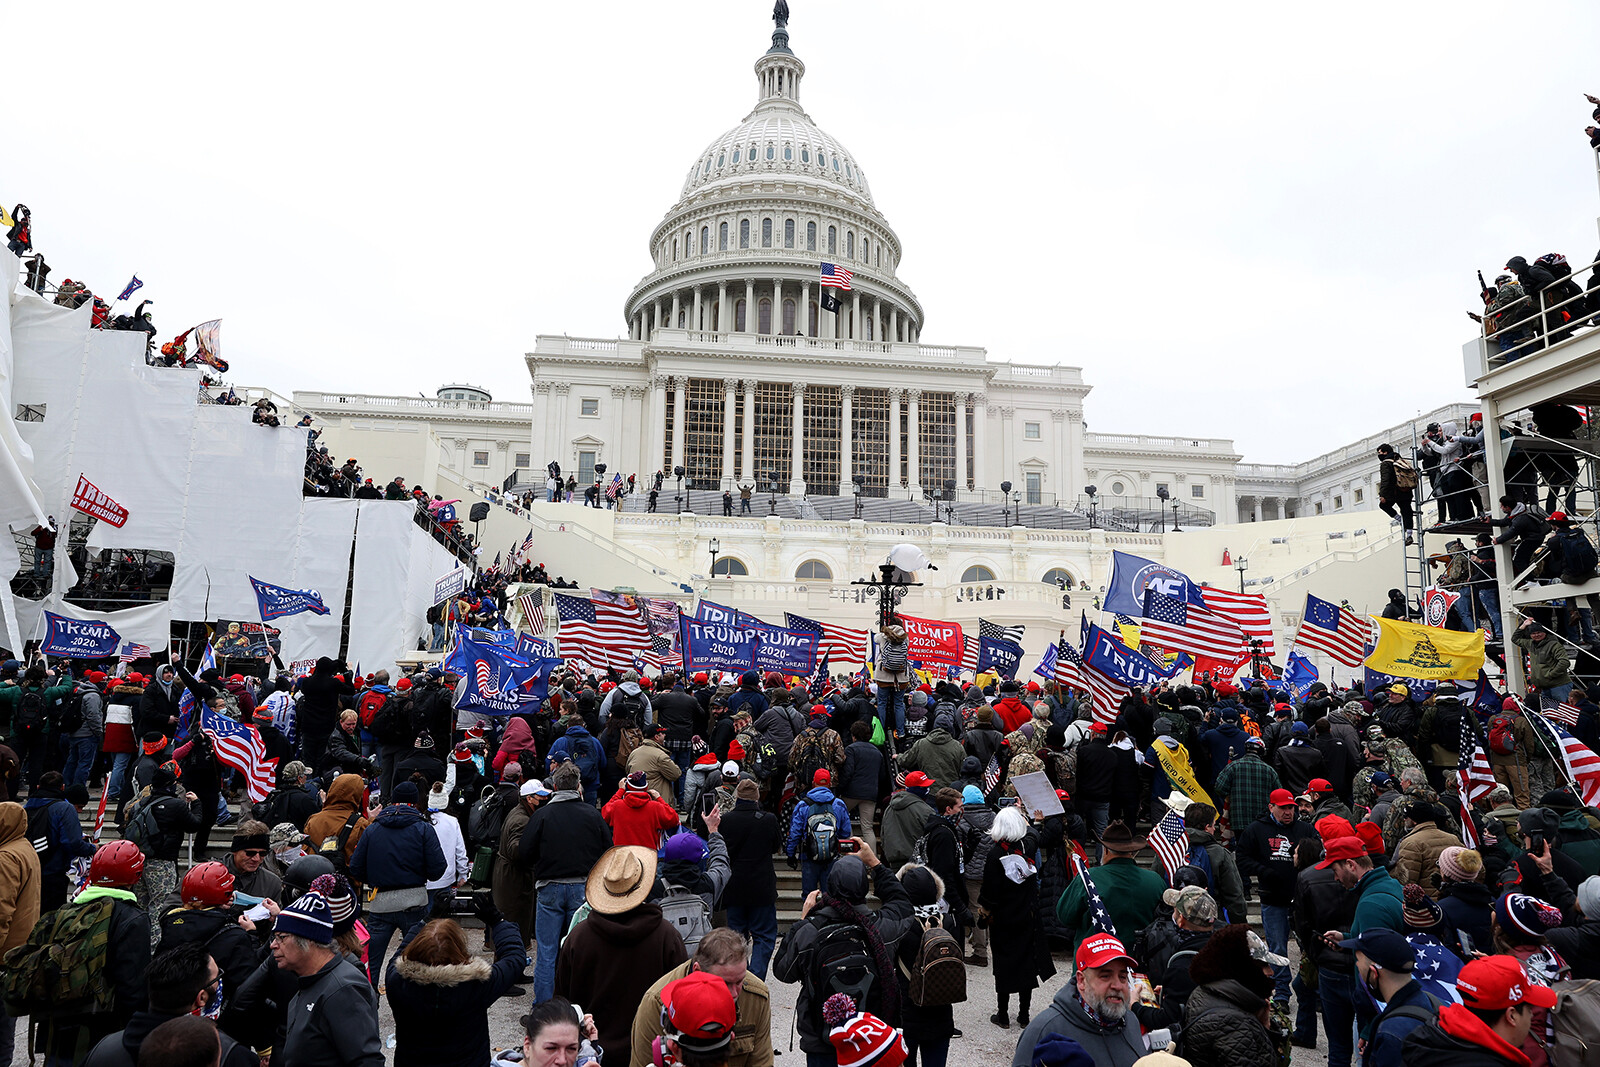 <i>Tasos Katopodis/Getty Images</i><br/>Protesters gather outside the U.S. Capitol Building on January 6